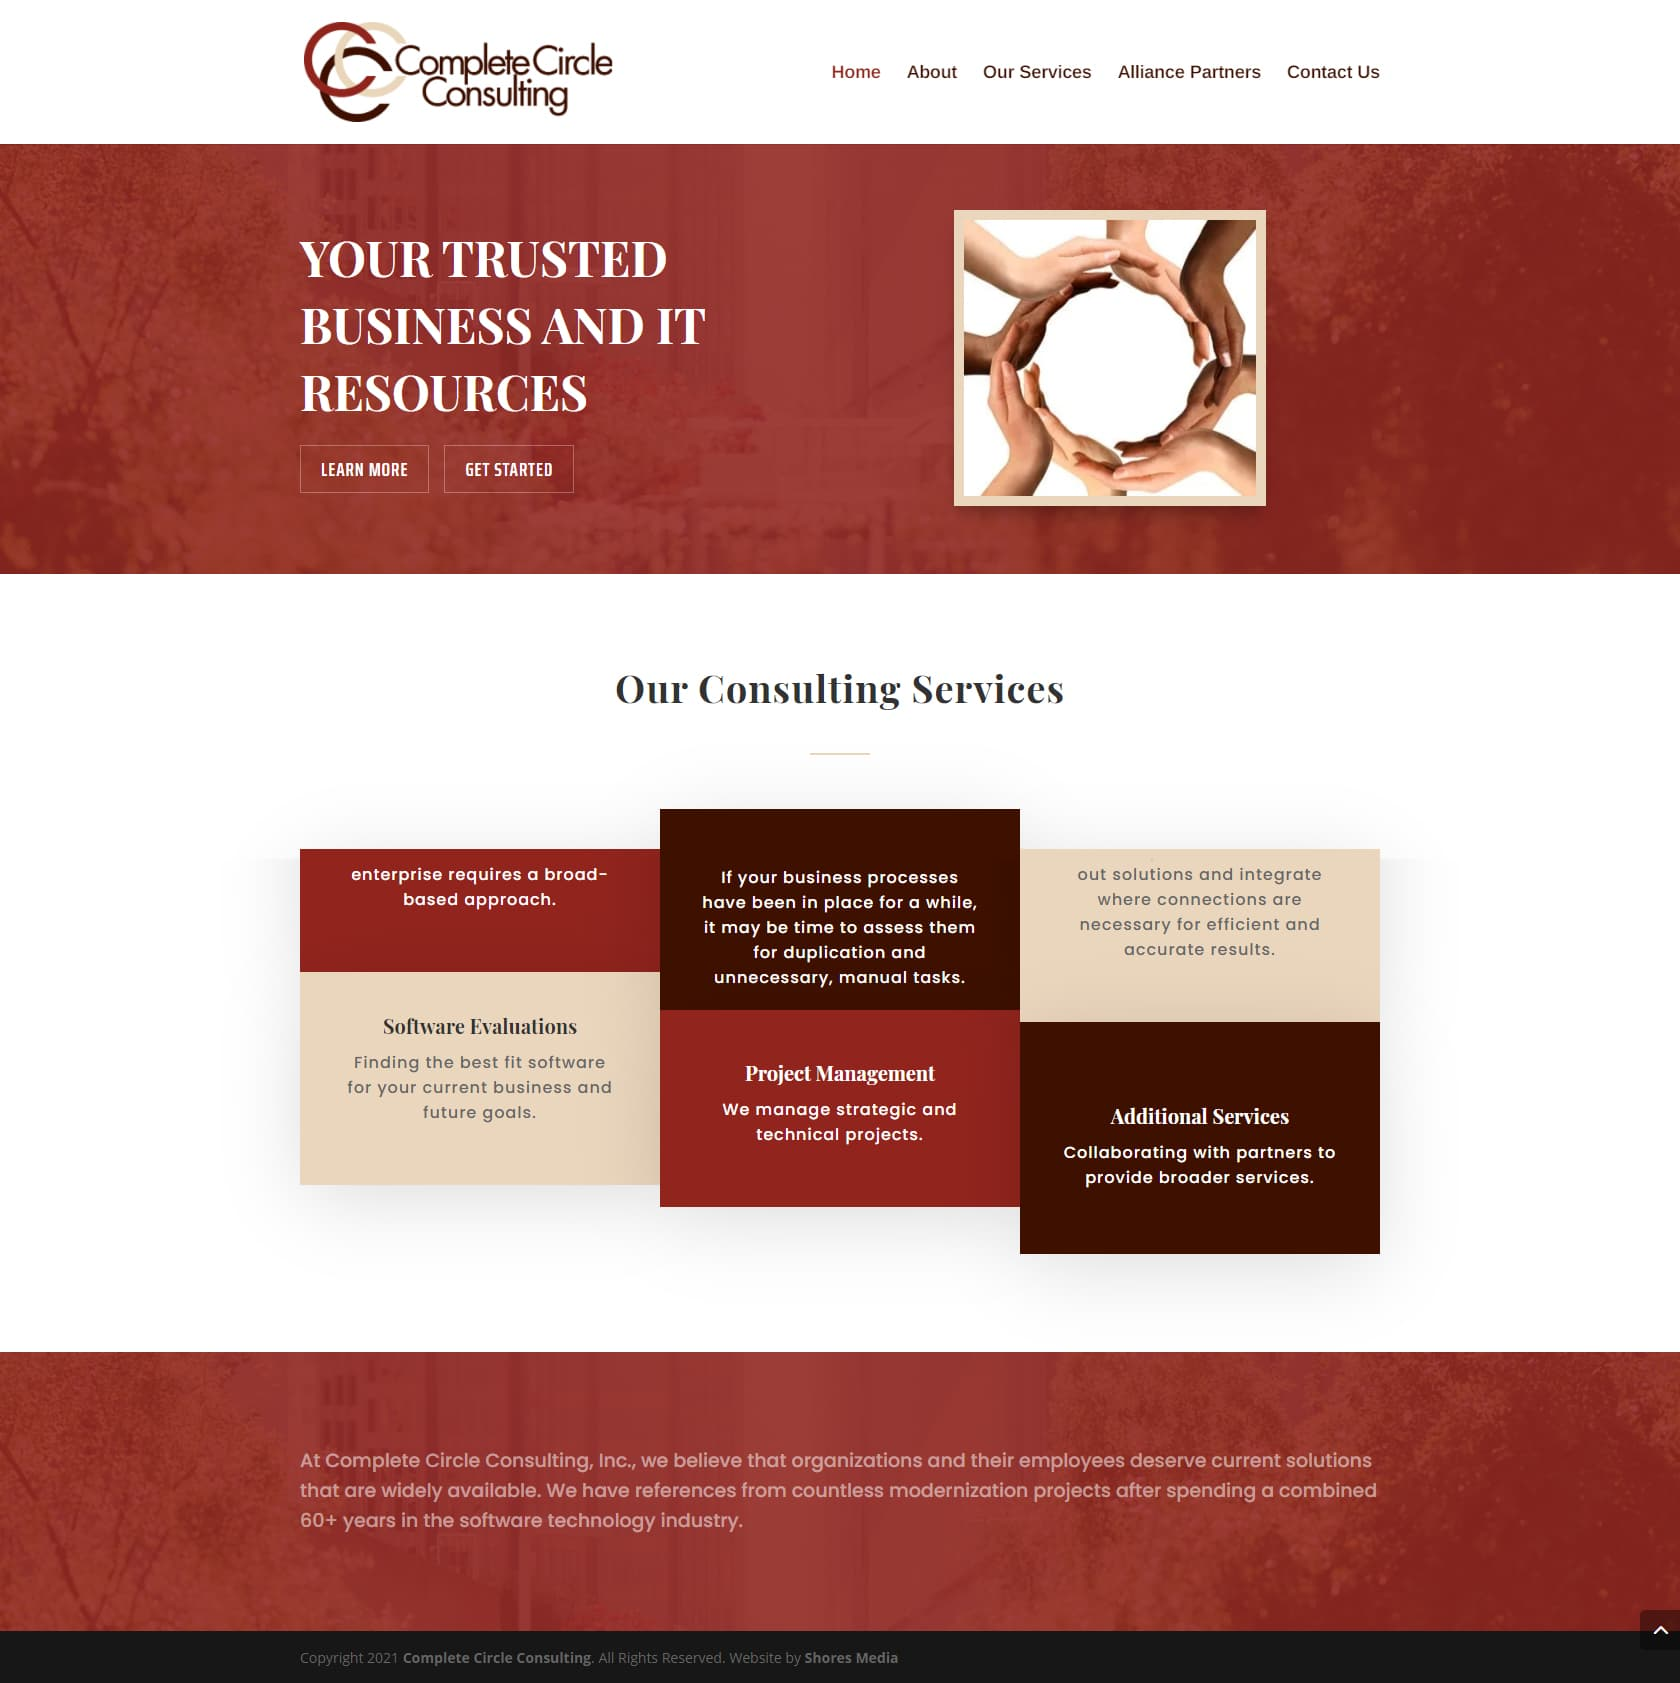 Complete Circle Consulting